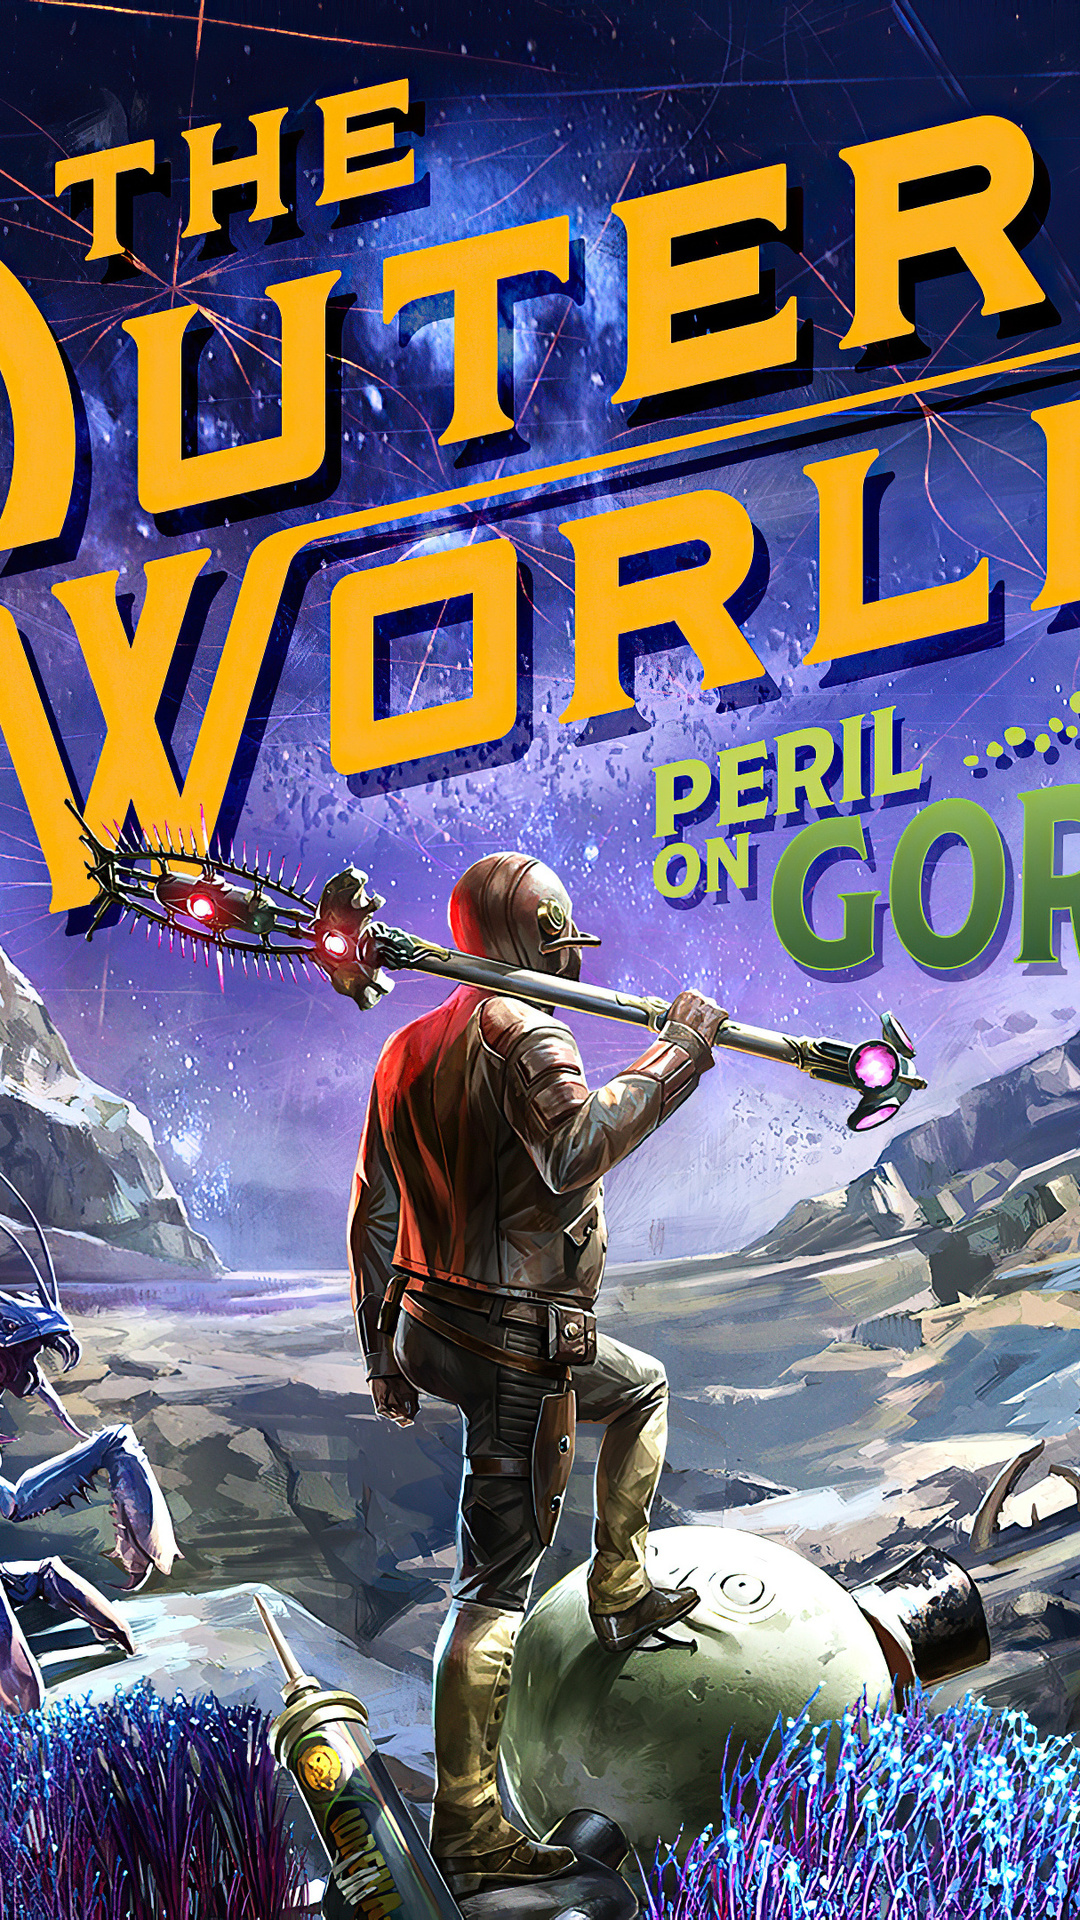 The Outer Worlds Peril On Gorgon Wallpaper